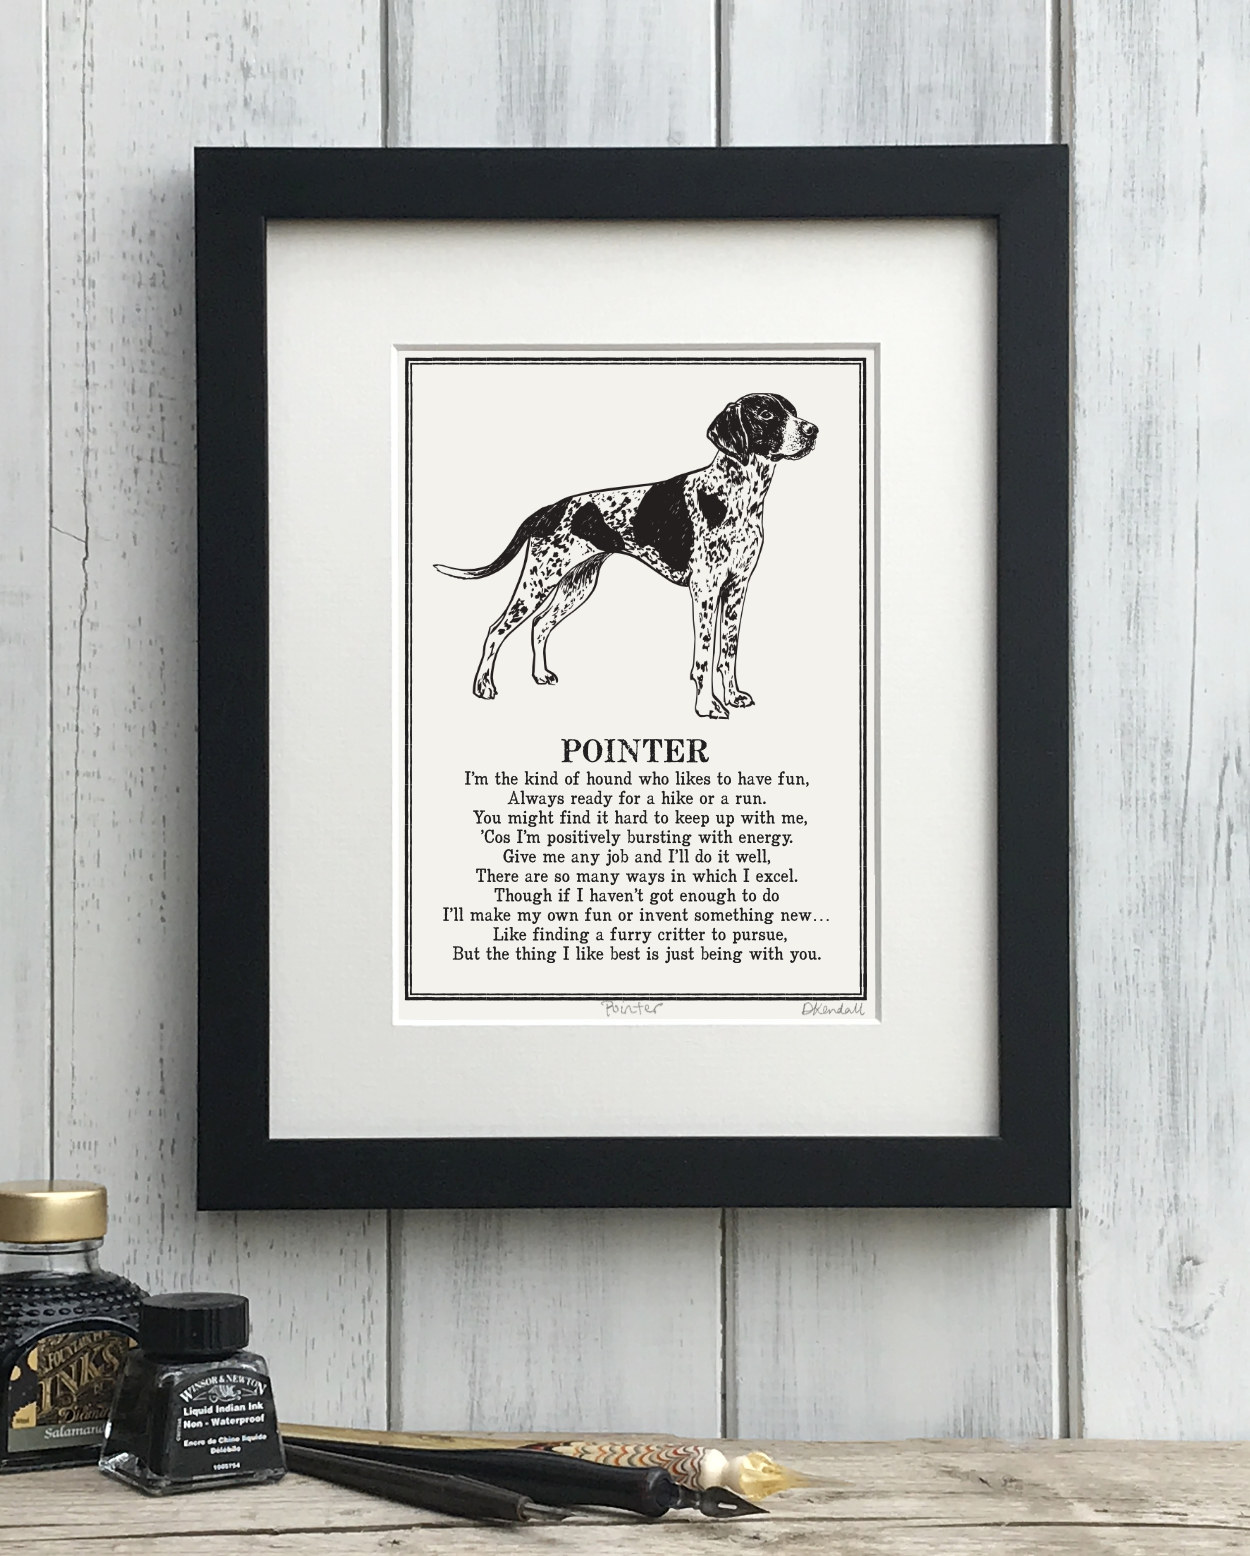 Short Haired Pointer Doggerel Illustrated Poem Art Print | The Enlightened Hound